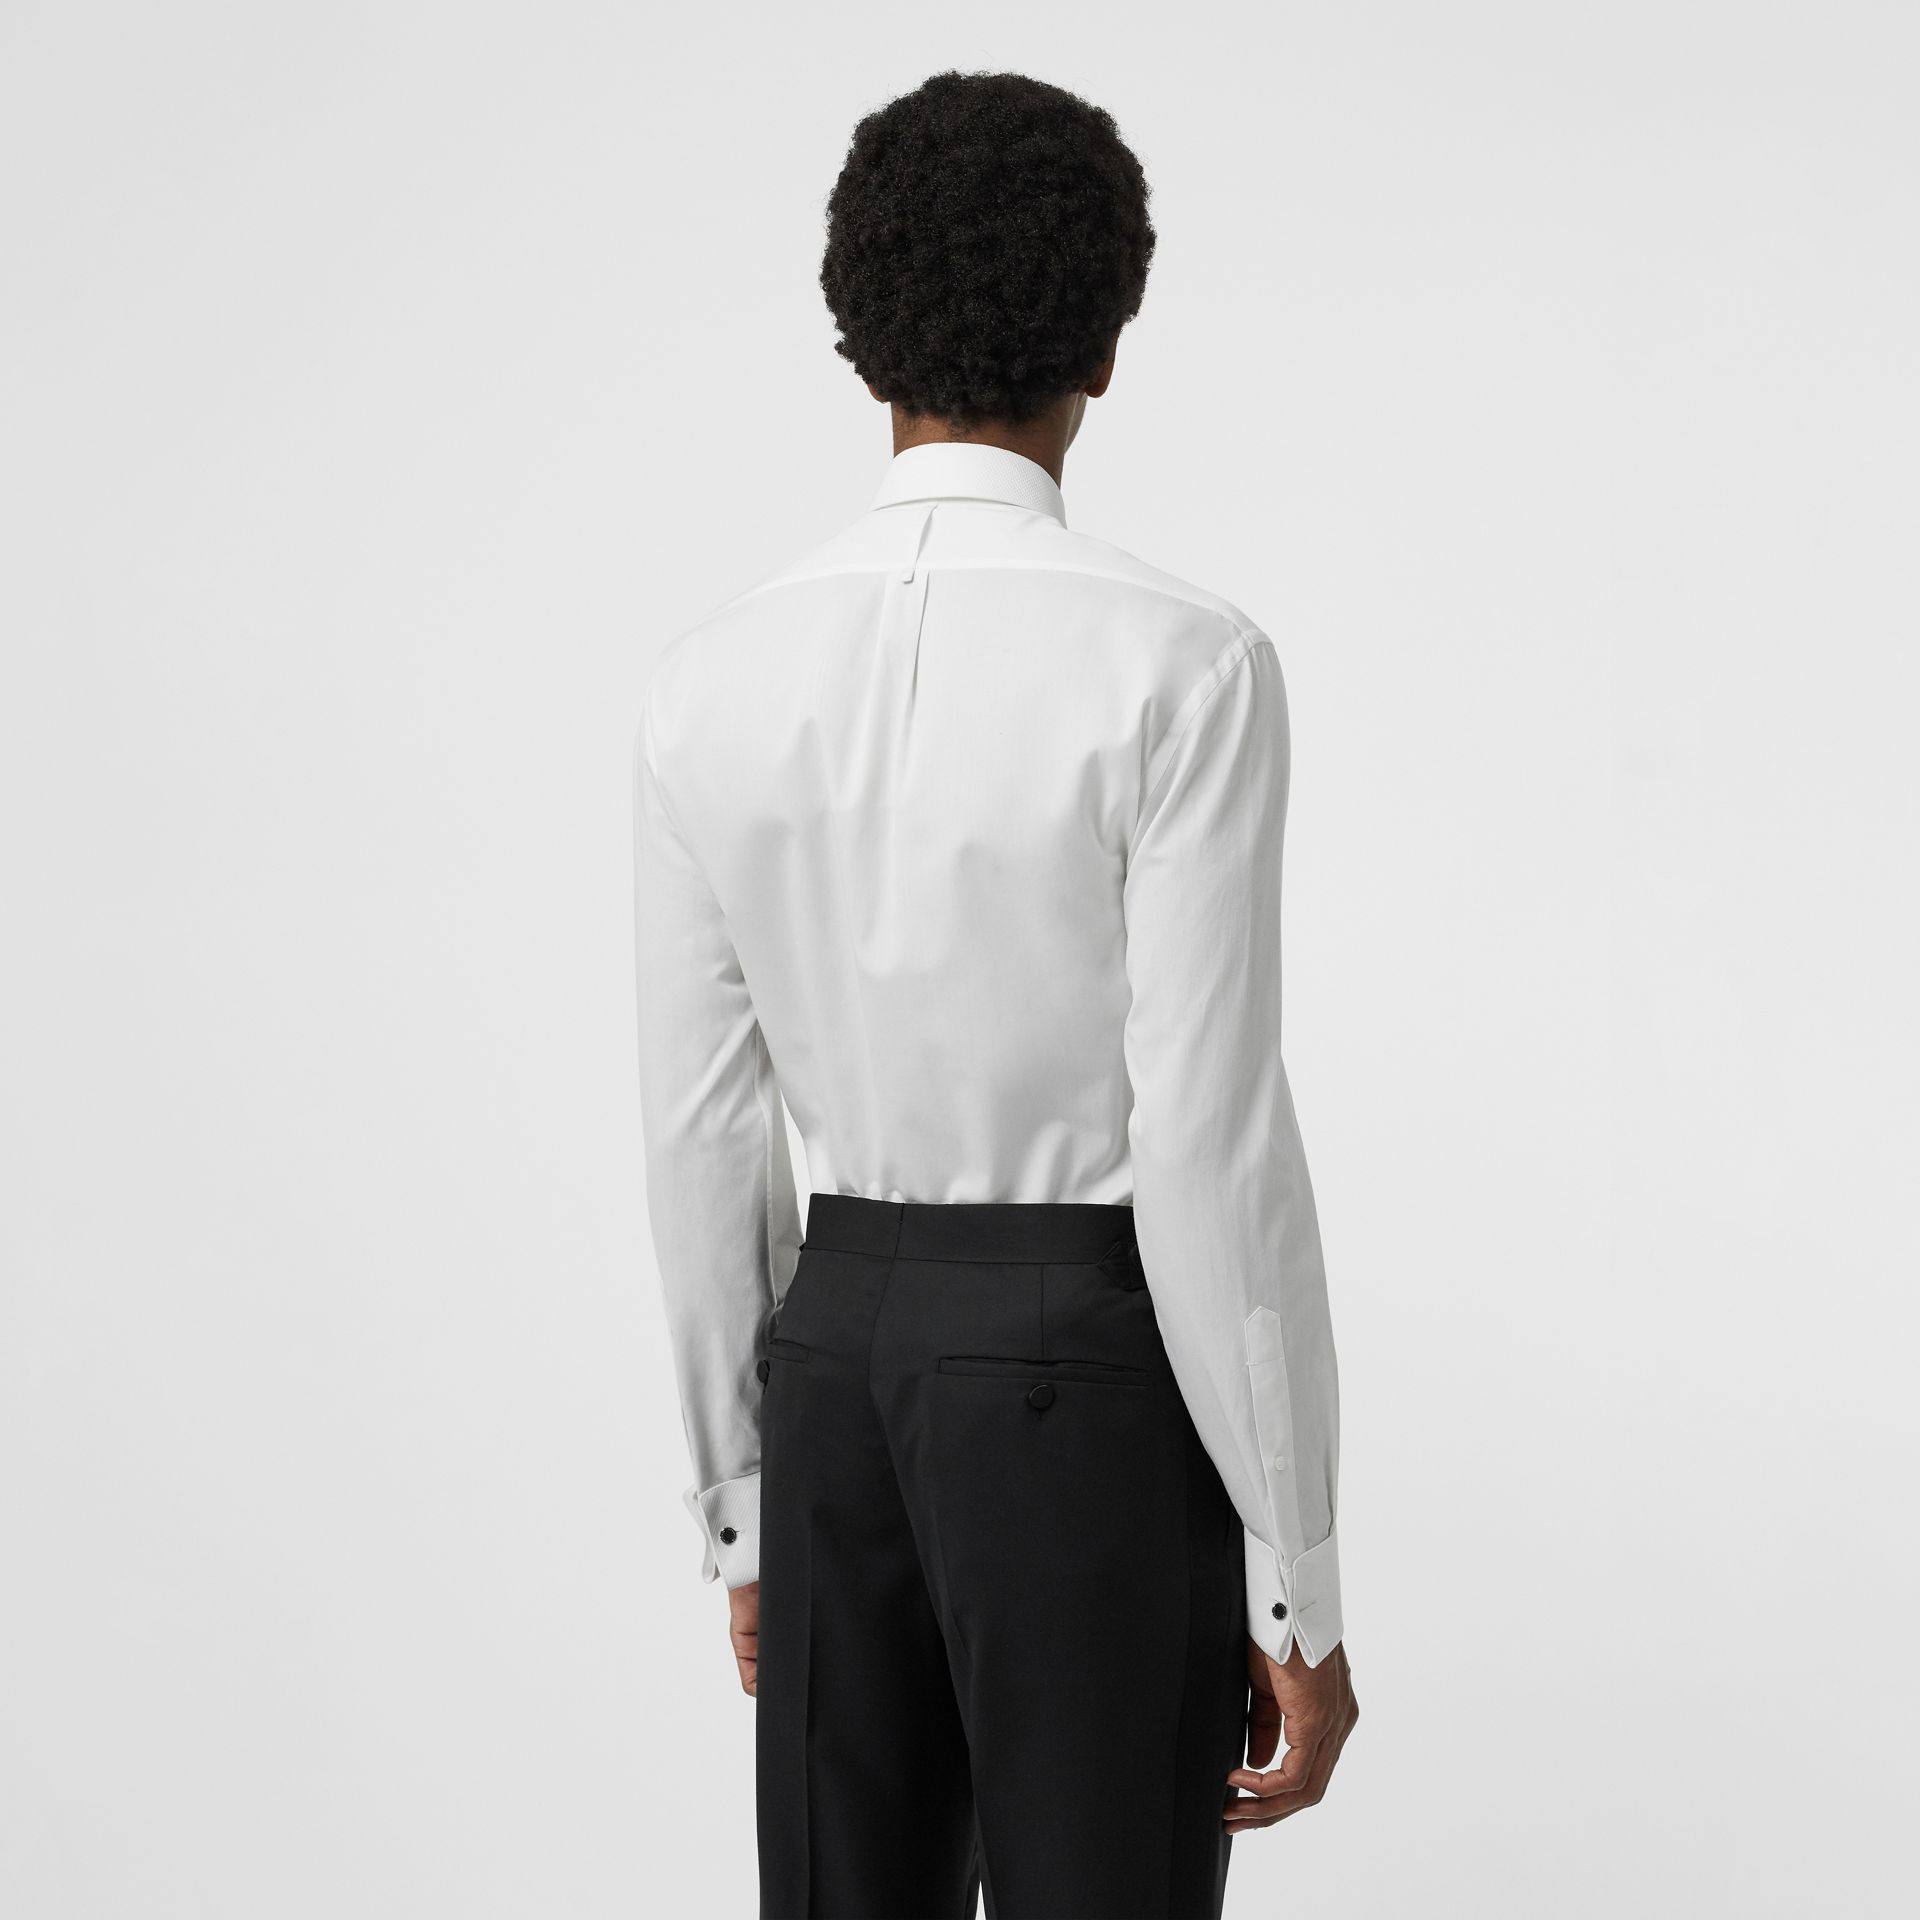 Modern Fit Panelled Bib Cotton Twill Evening Shirt in White - Men | Burberry Singapore - gallery image 2